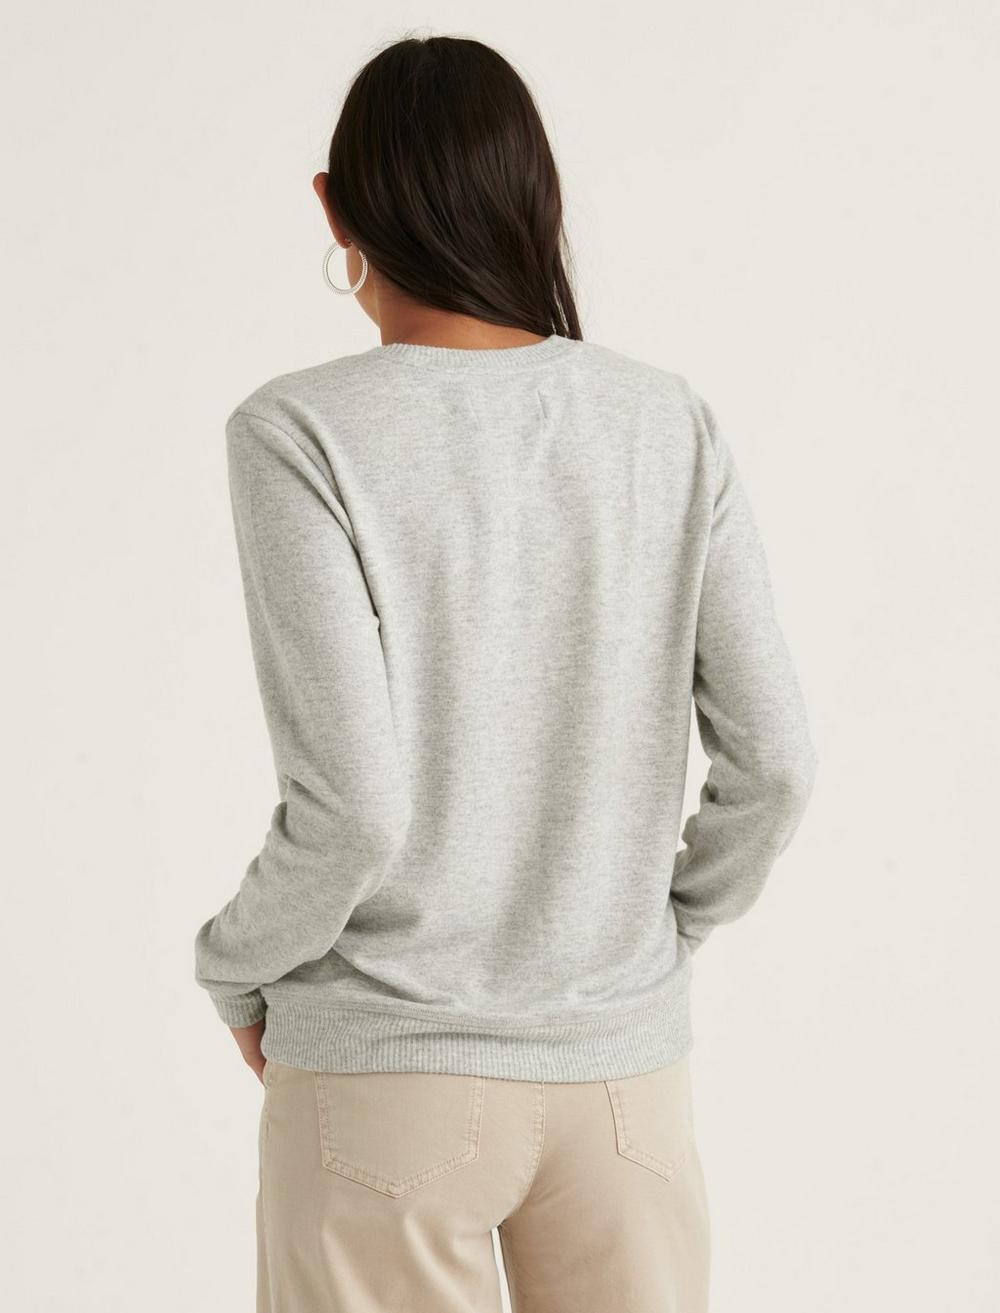 EMBROIDERED CLOUD JERSEY PULLOVER, image 4